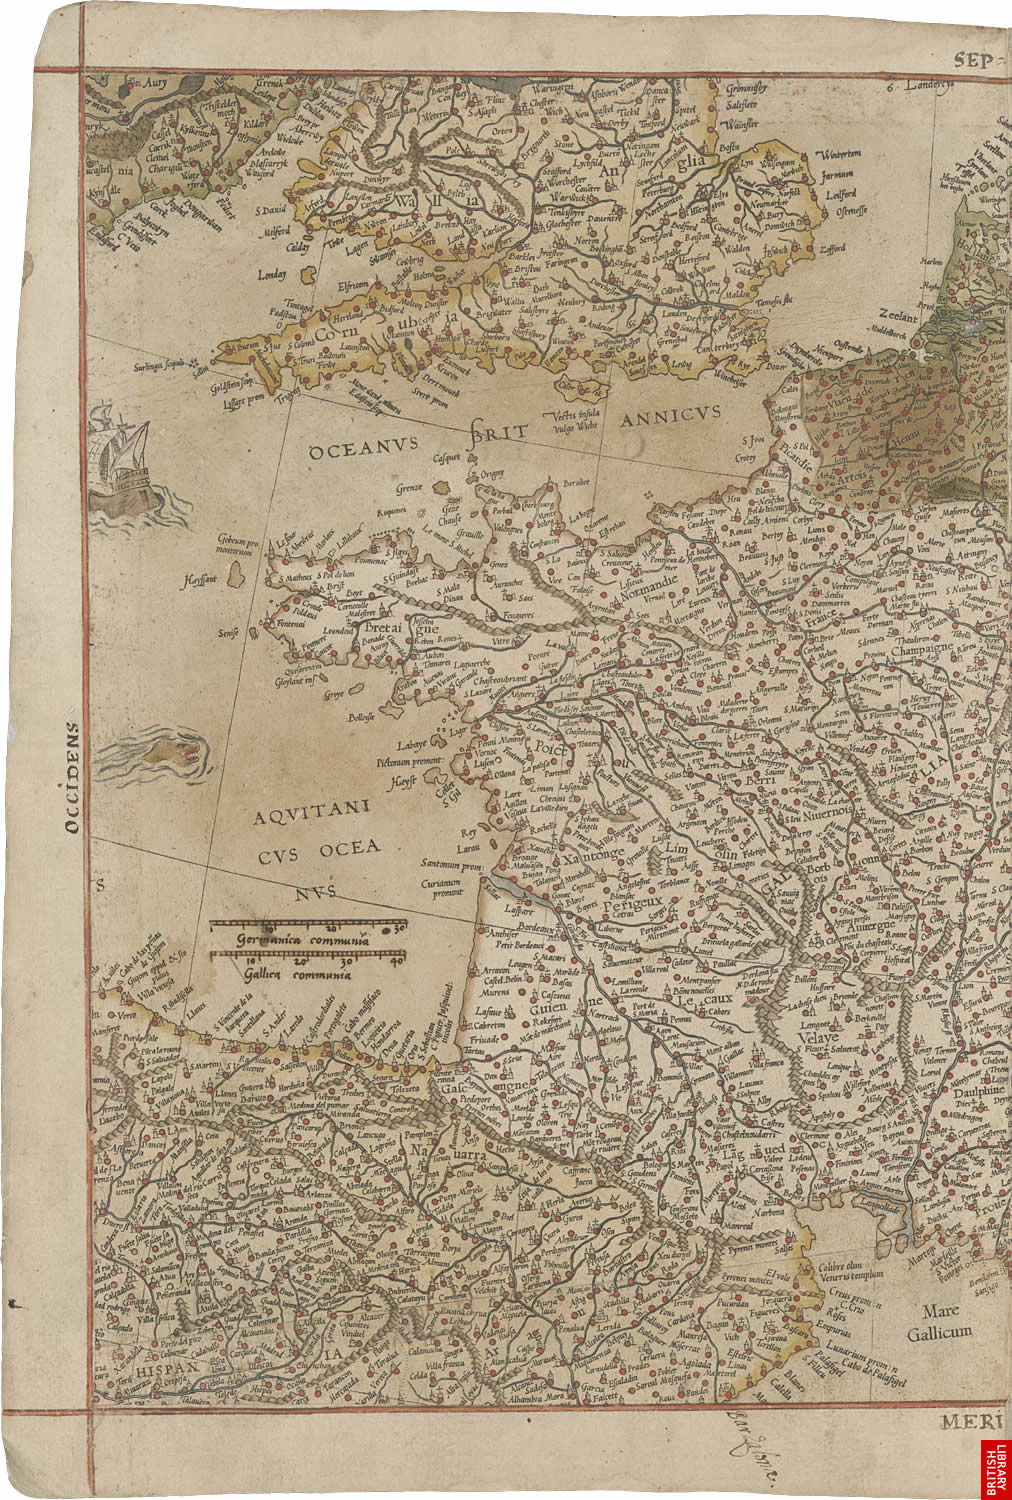 Virtual Books Images Only The Mercator Atlas Of Europe Pages 11 And 12